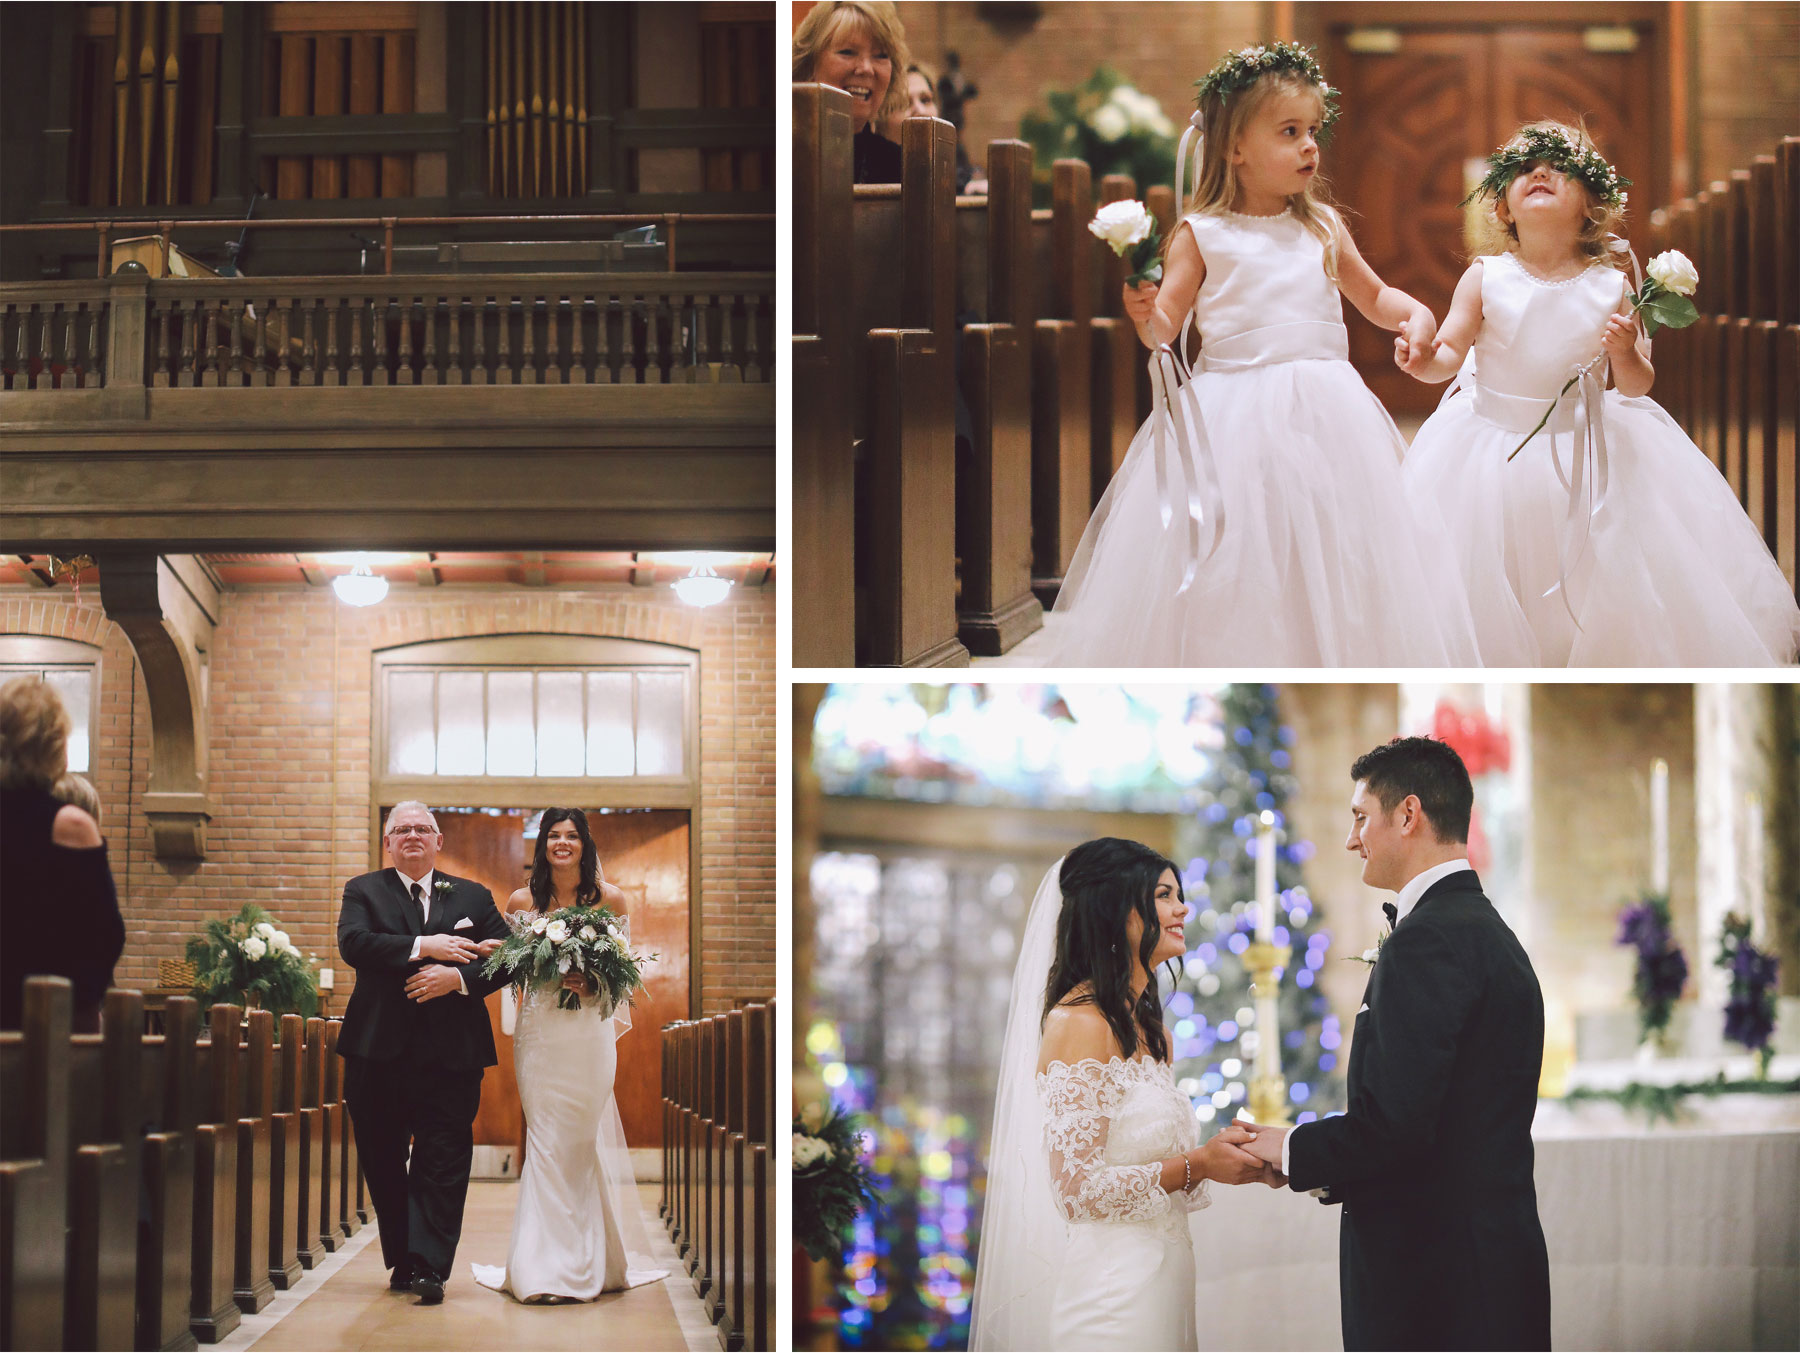 12-Minneapolis-Minnesota-Wedding-Photographer-by-Vick-Photography-Church-of-Incarnation-Ceremony-Maggie-and-Matt.jpg